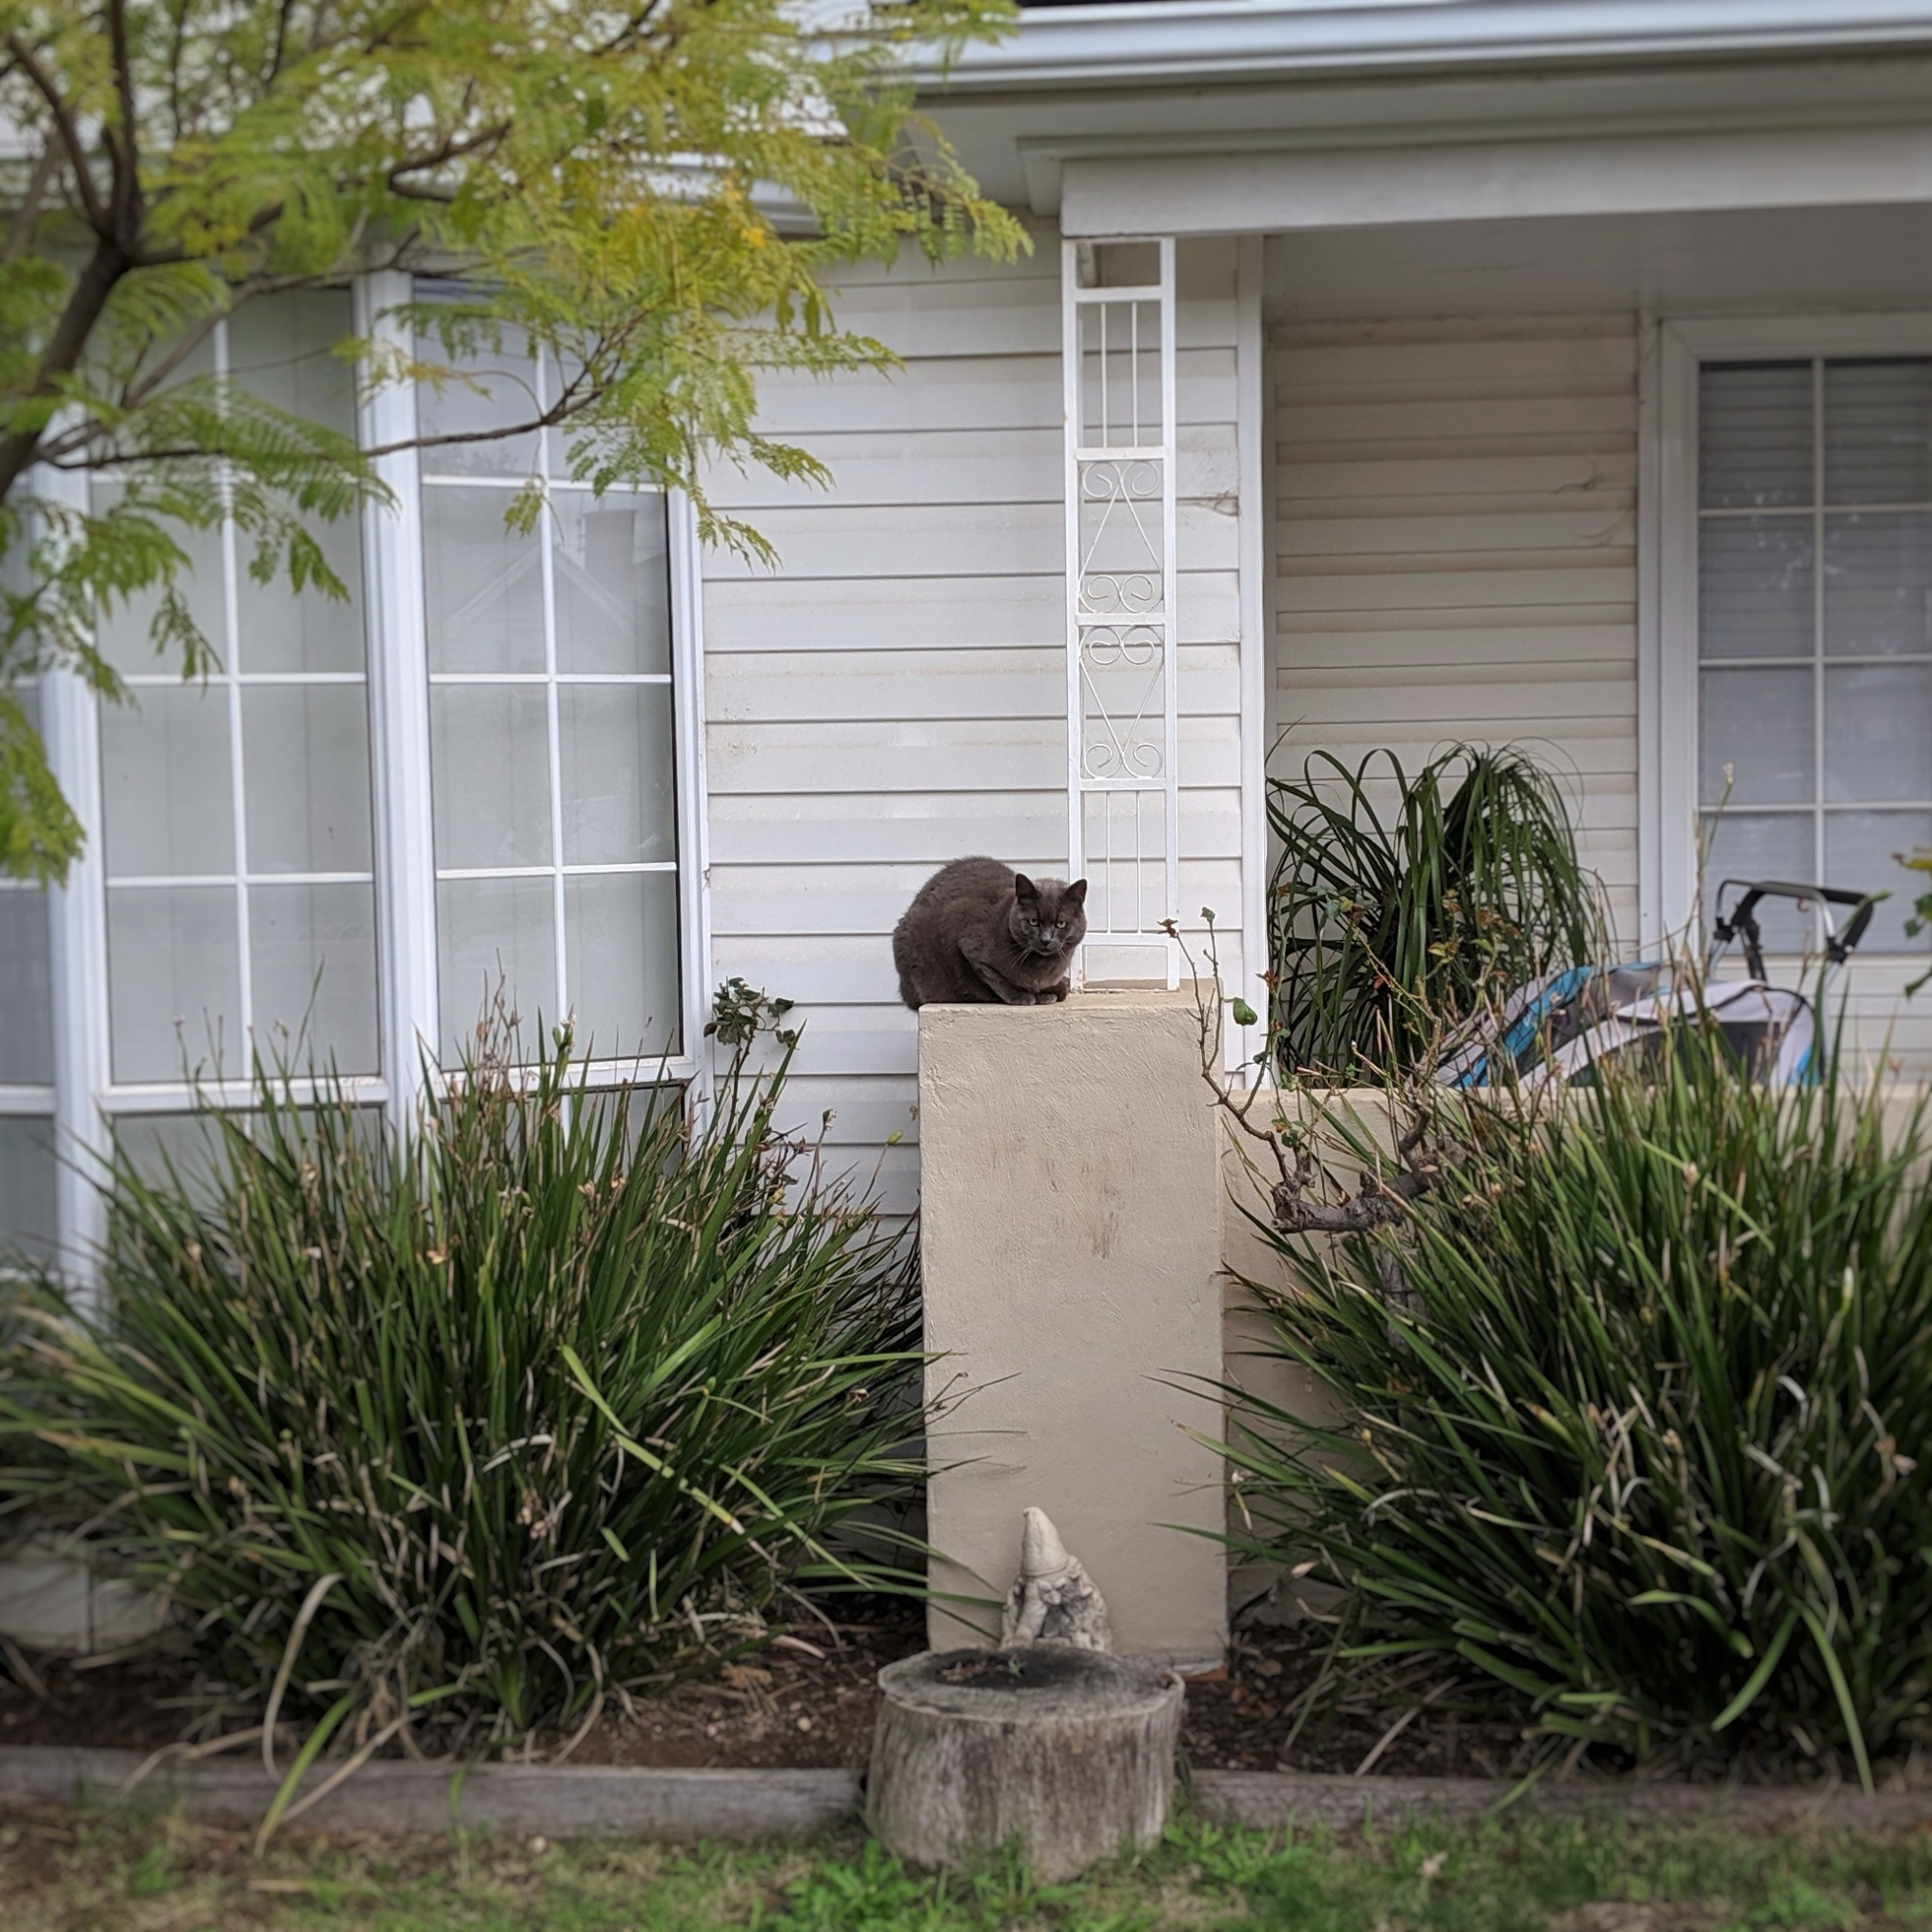 Disapproving cat-on-a-post is disapproving.